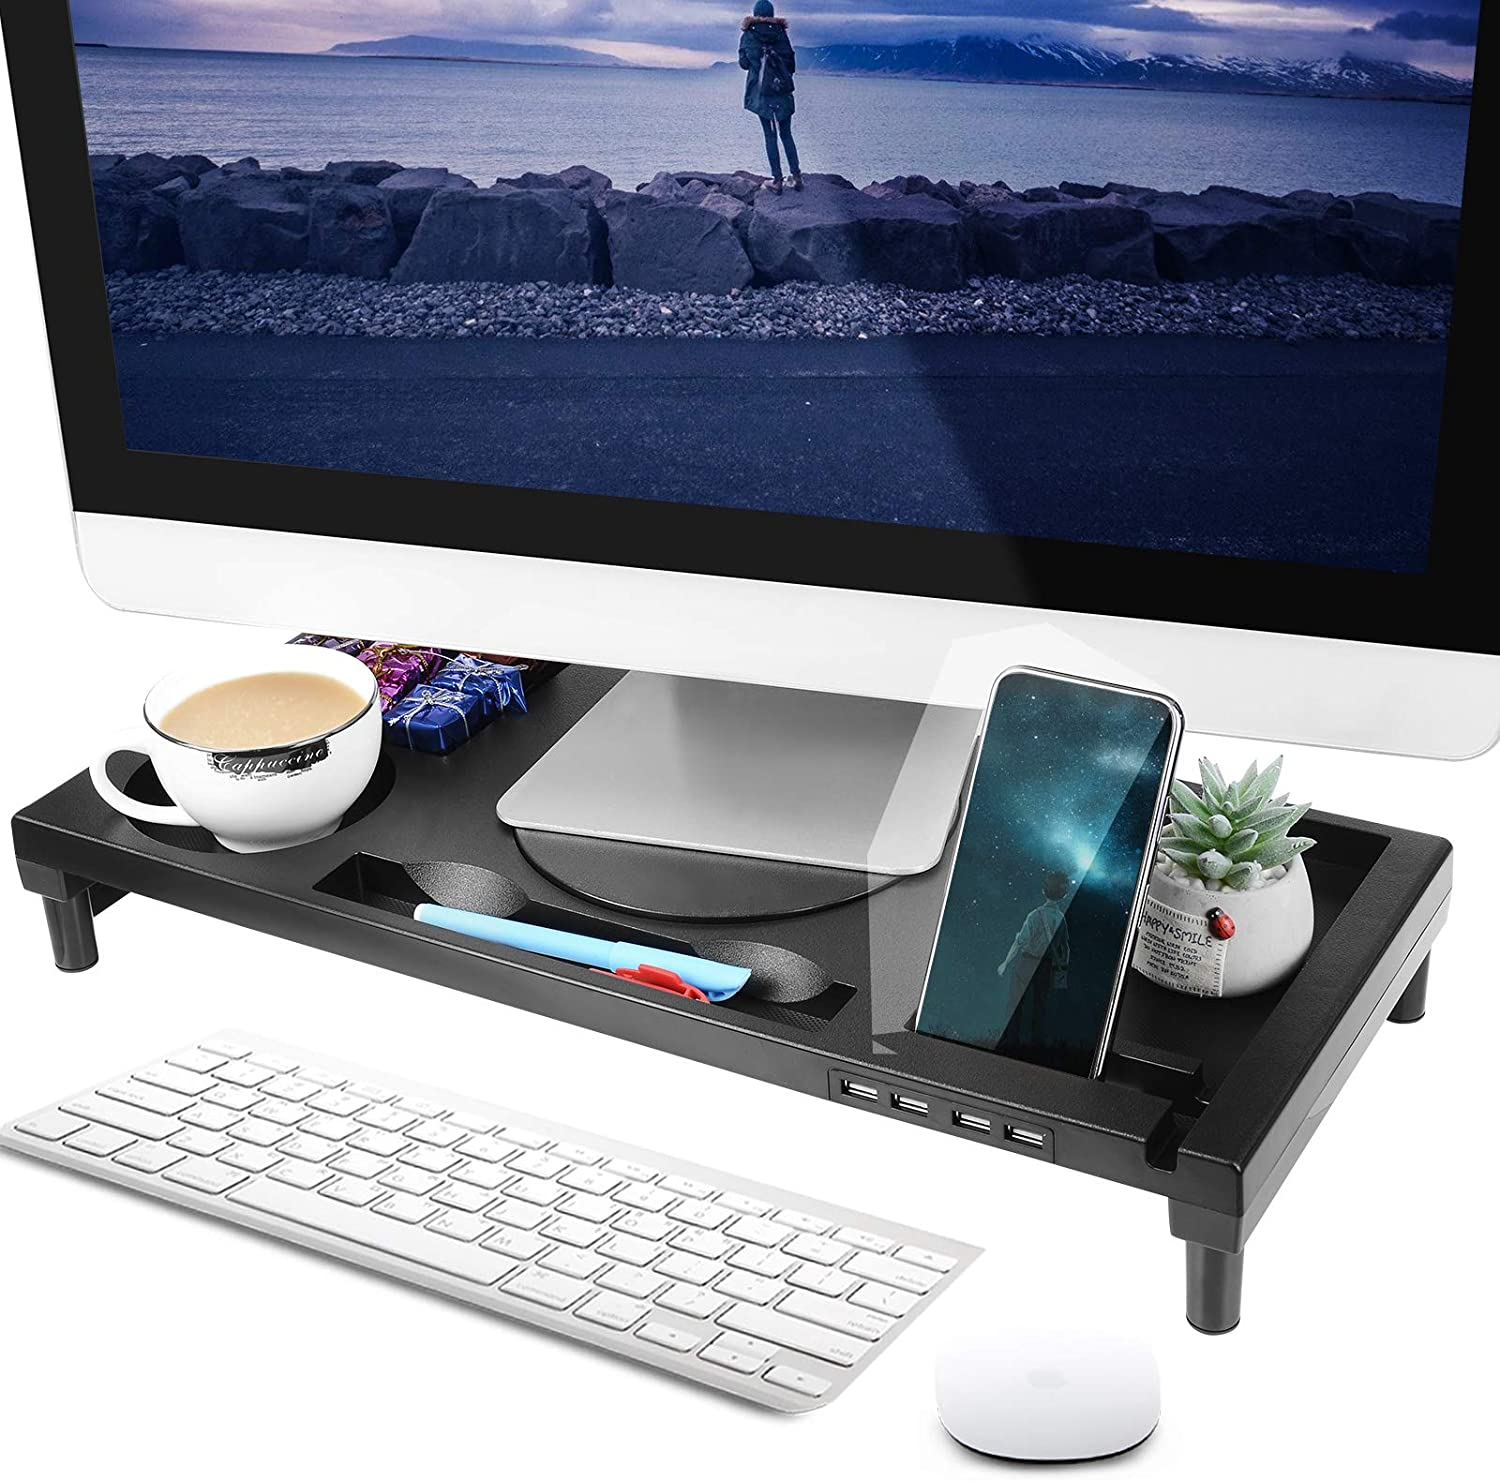 "Hikeyota Monitor Stand Riser, 20.7"" Monitor Stand for Laptop, Computer, Rotatable Laptop Stand Desk Organizer with Storage and Cable Management"